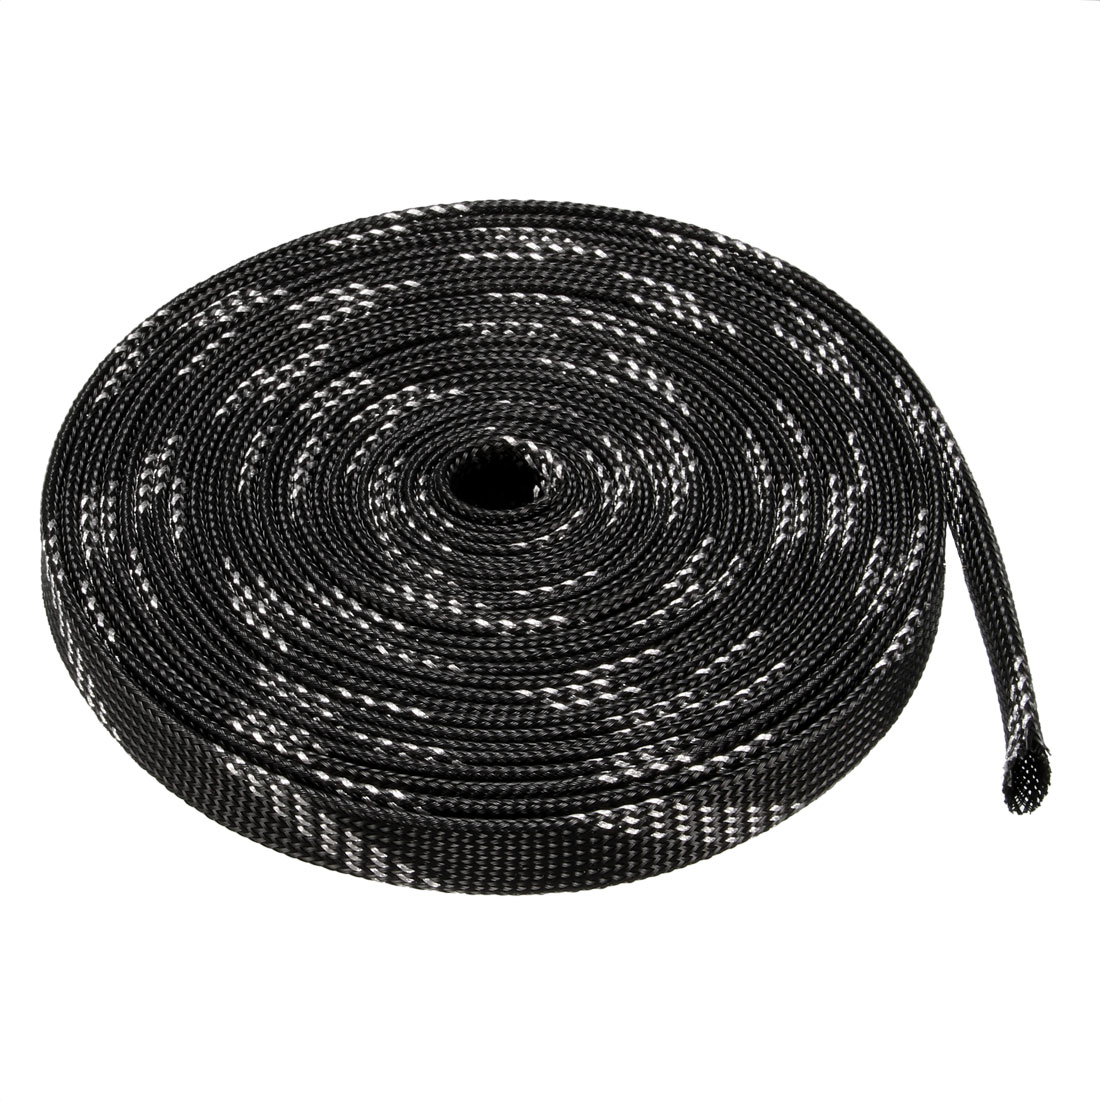 12mm Dia Tight Braided PET Expandable Sleeving Cable Wrap Sheath Black Silver Tone 16Ft